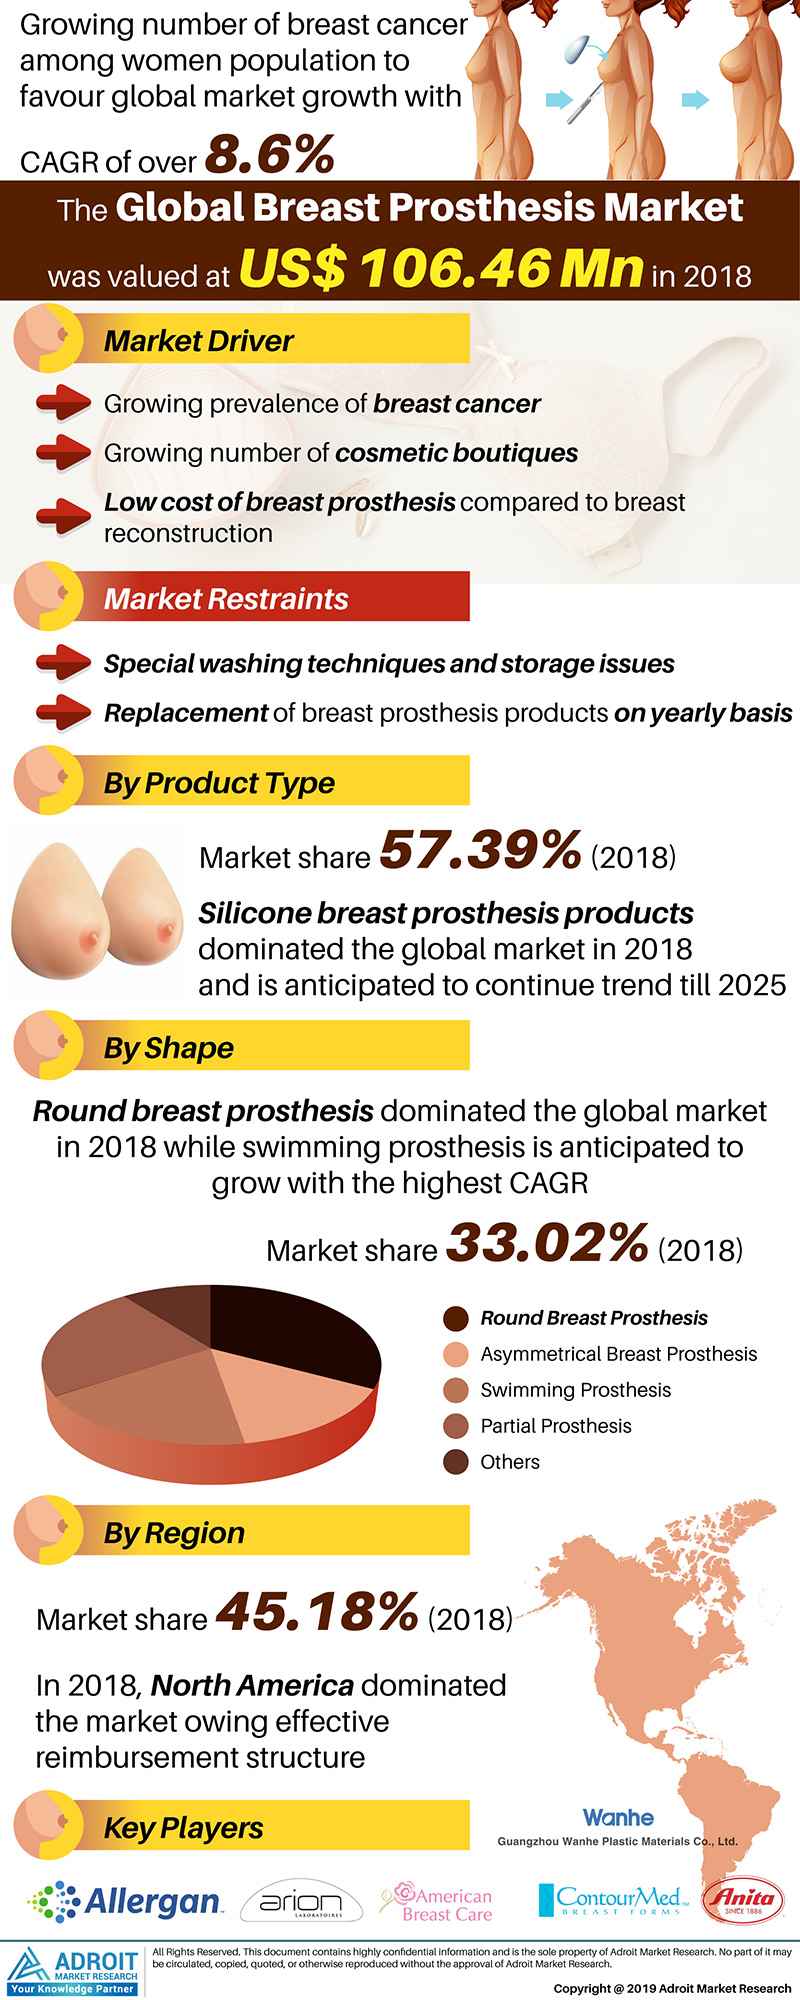 Global Breast Prosthesis Market Size 2017 By Product Type, Shape, Region And Forecast 2019 To 2025